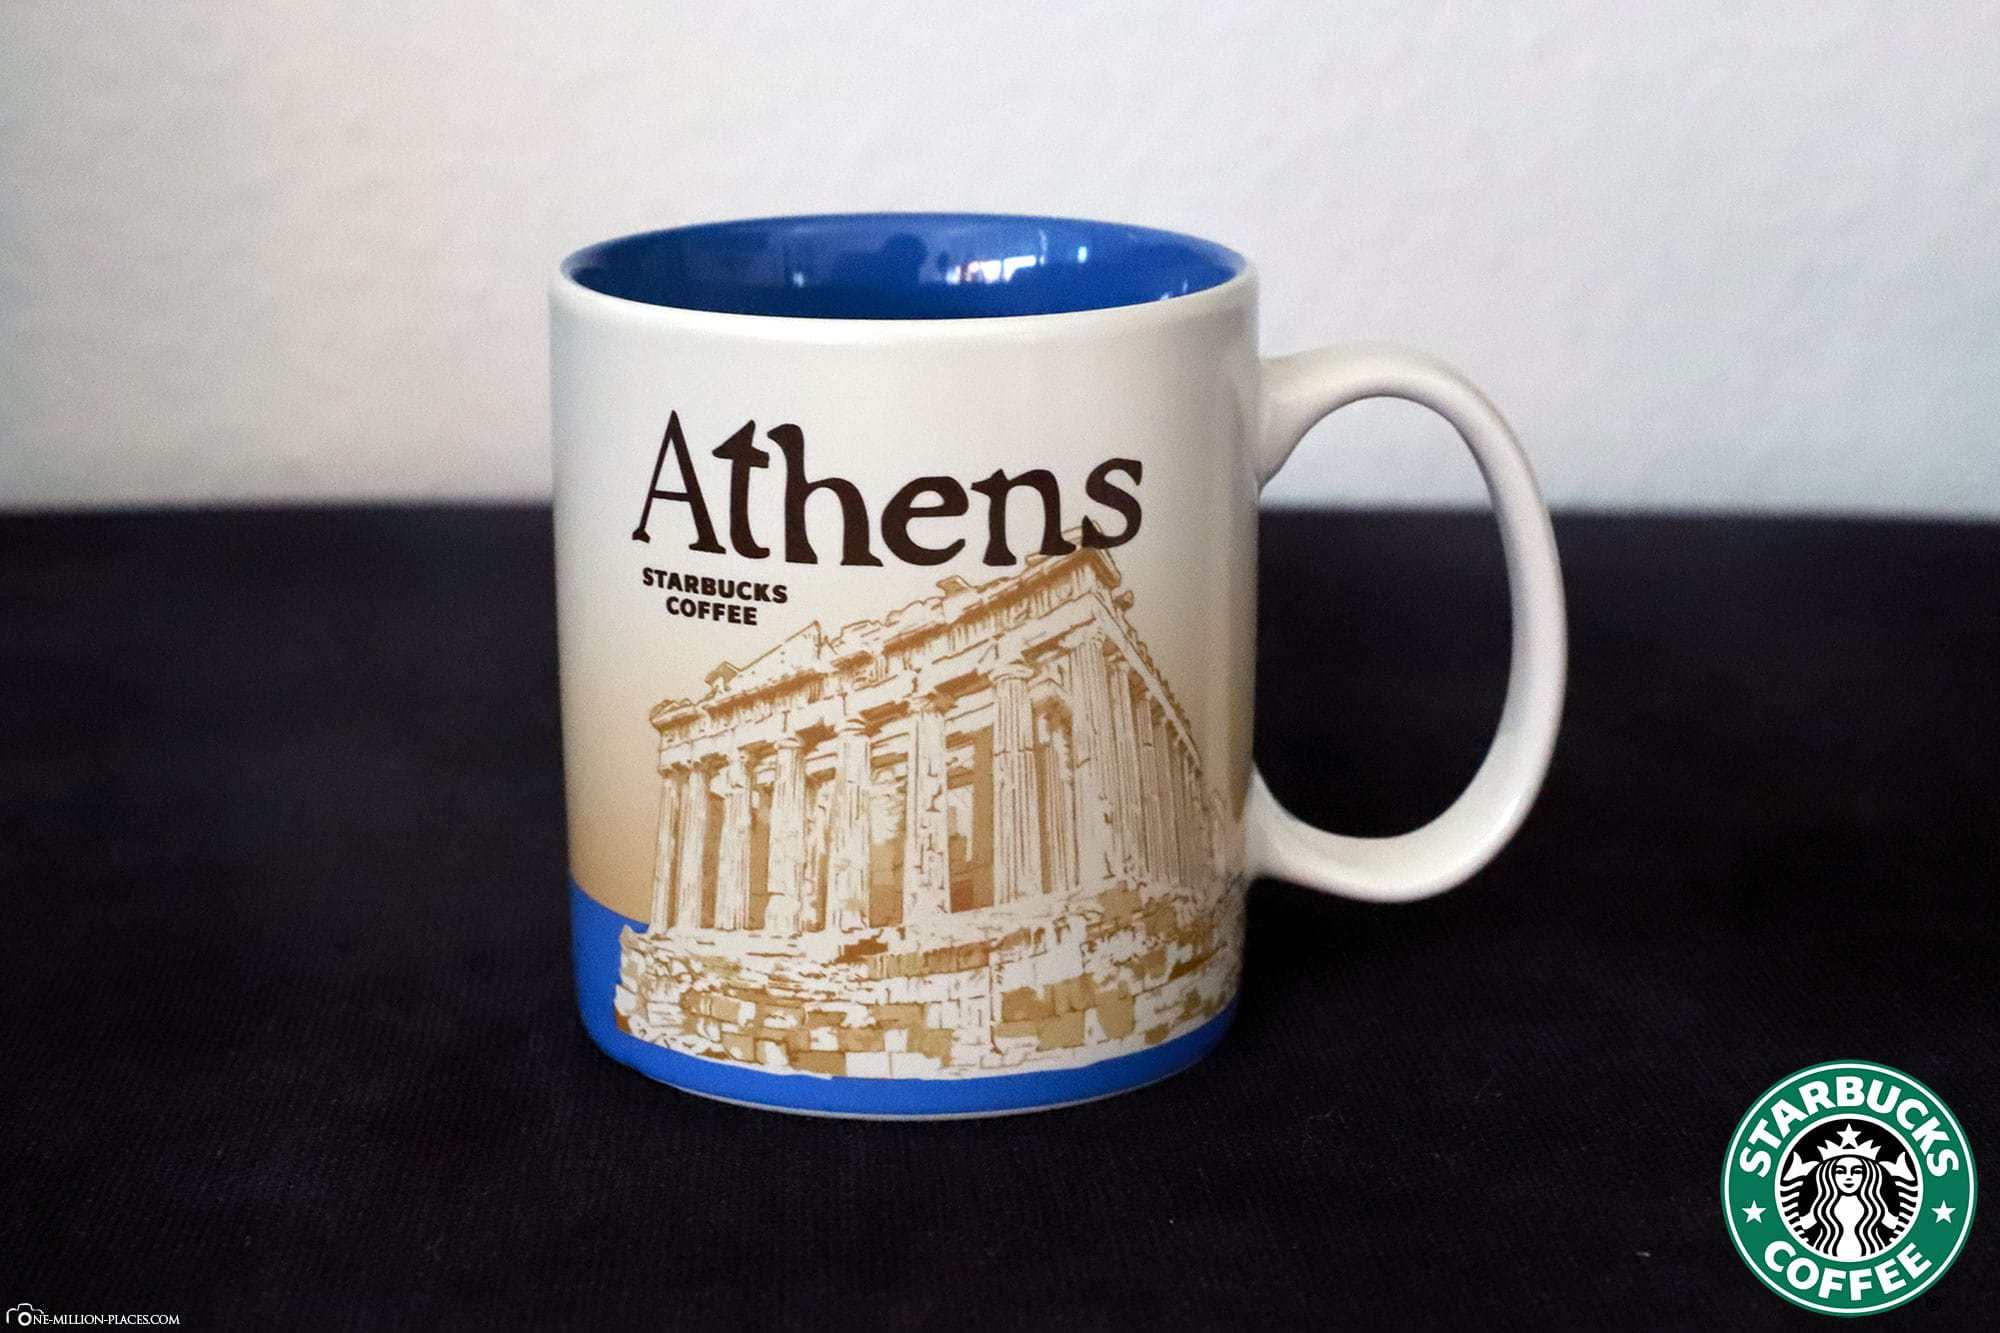 Athens, Starbucks Cup, Global Icon Series, City Mugs, Collection, Greece, Travelreport